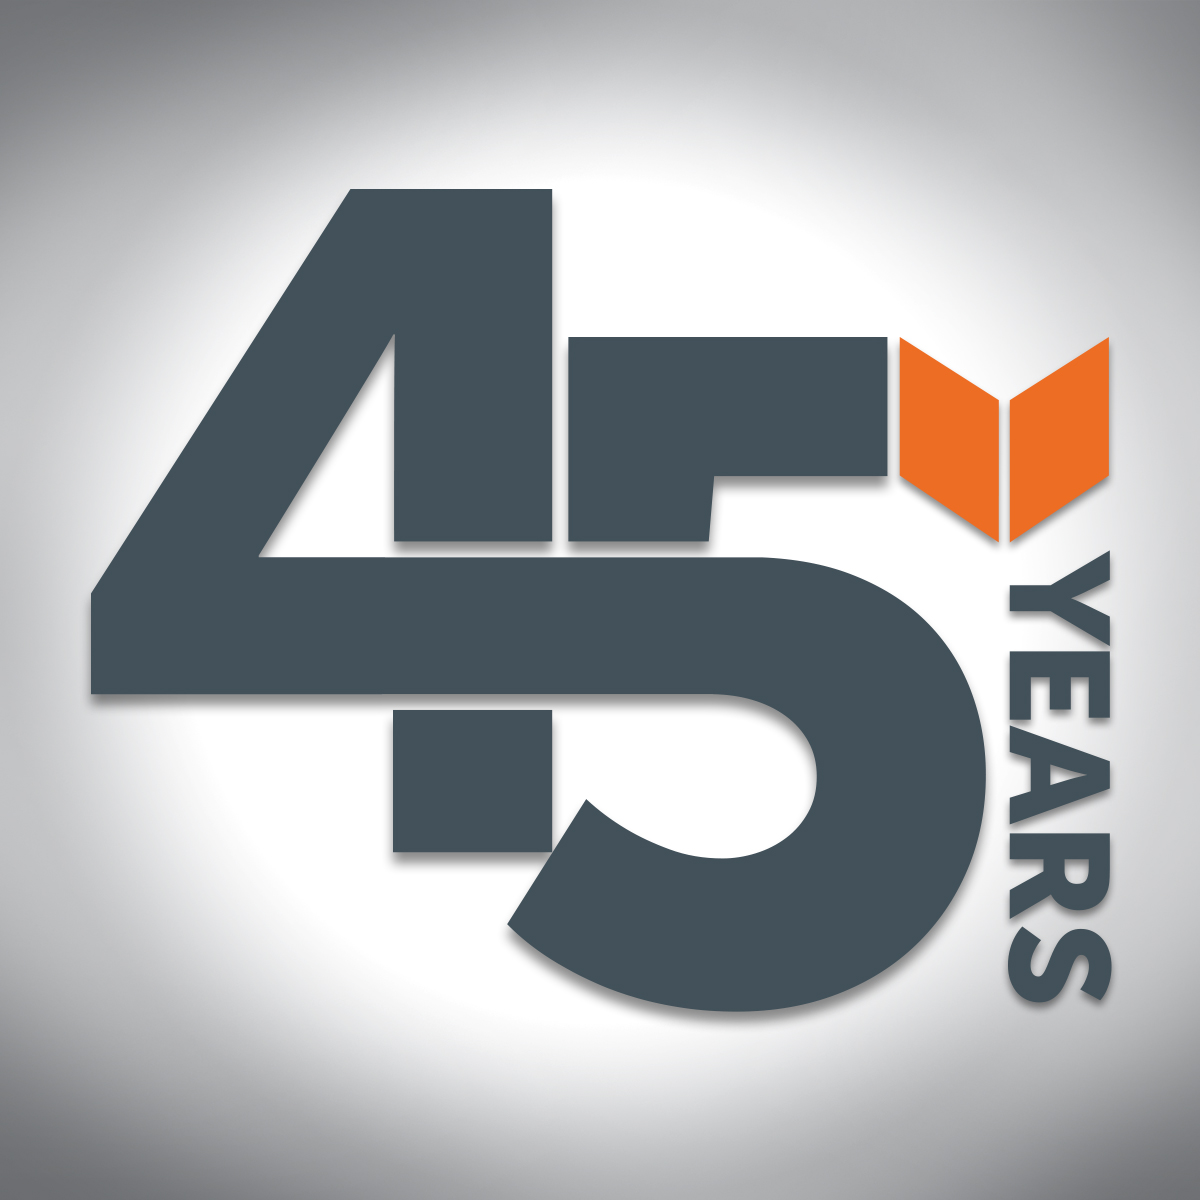 William Fox Munroe 45th Anniversary Logo